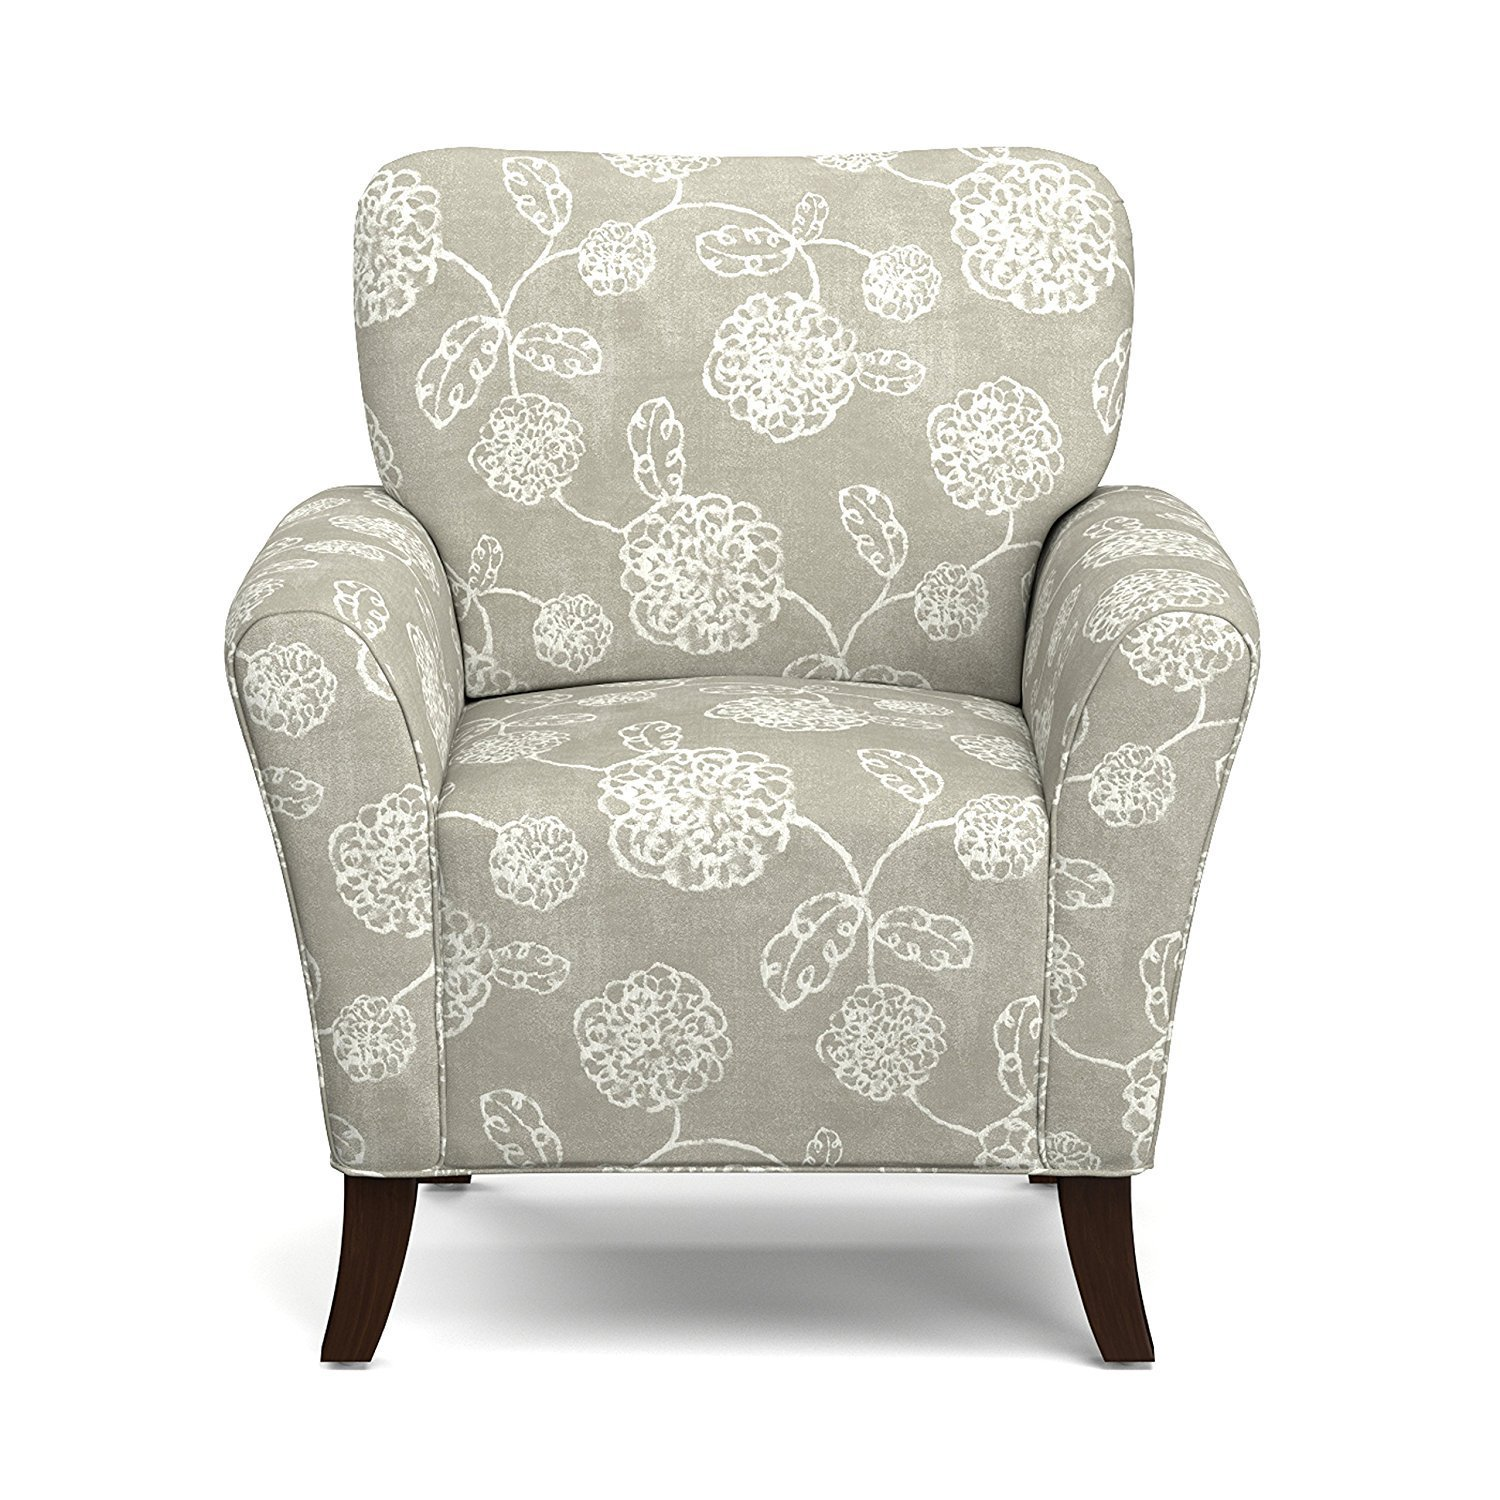 26 Interesting Living Room Décor Ideas Definitive Guide: Upholstered Living Room Chairs